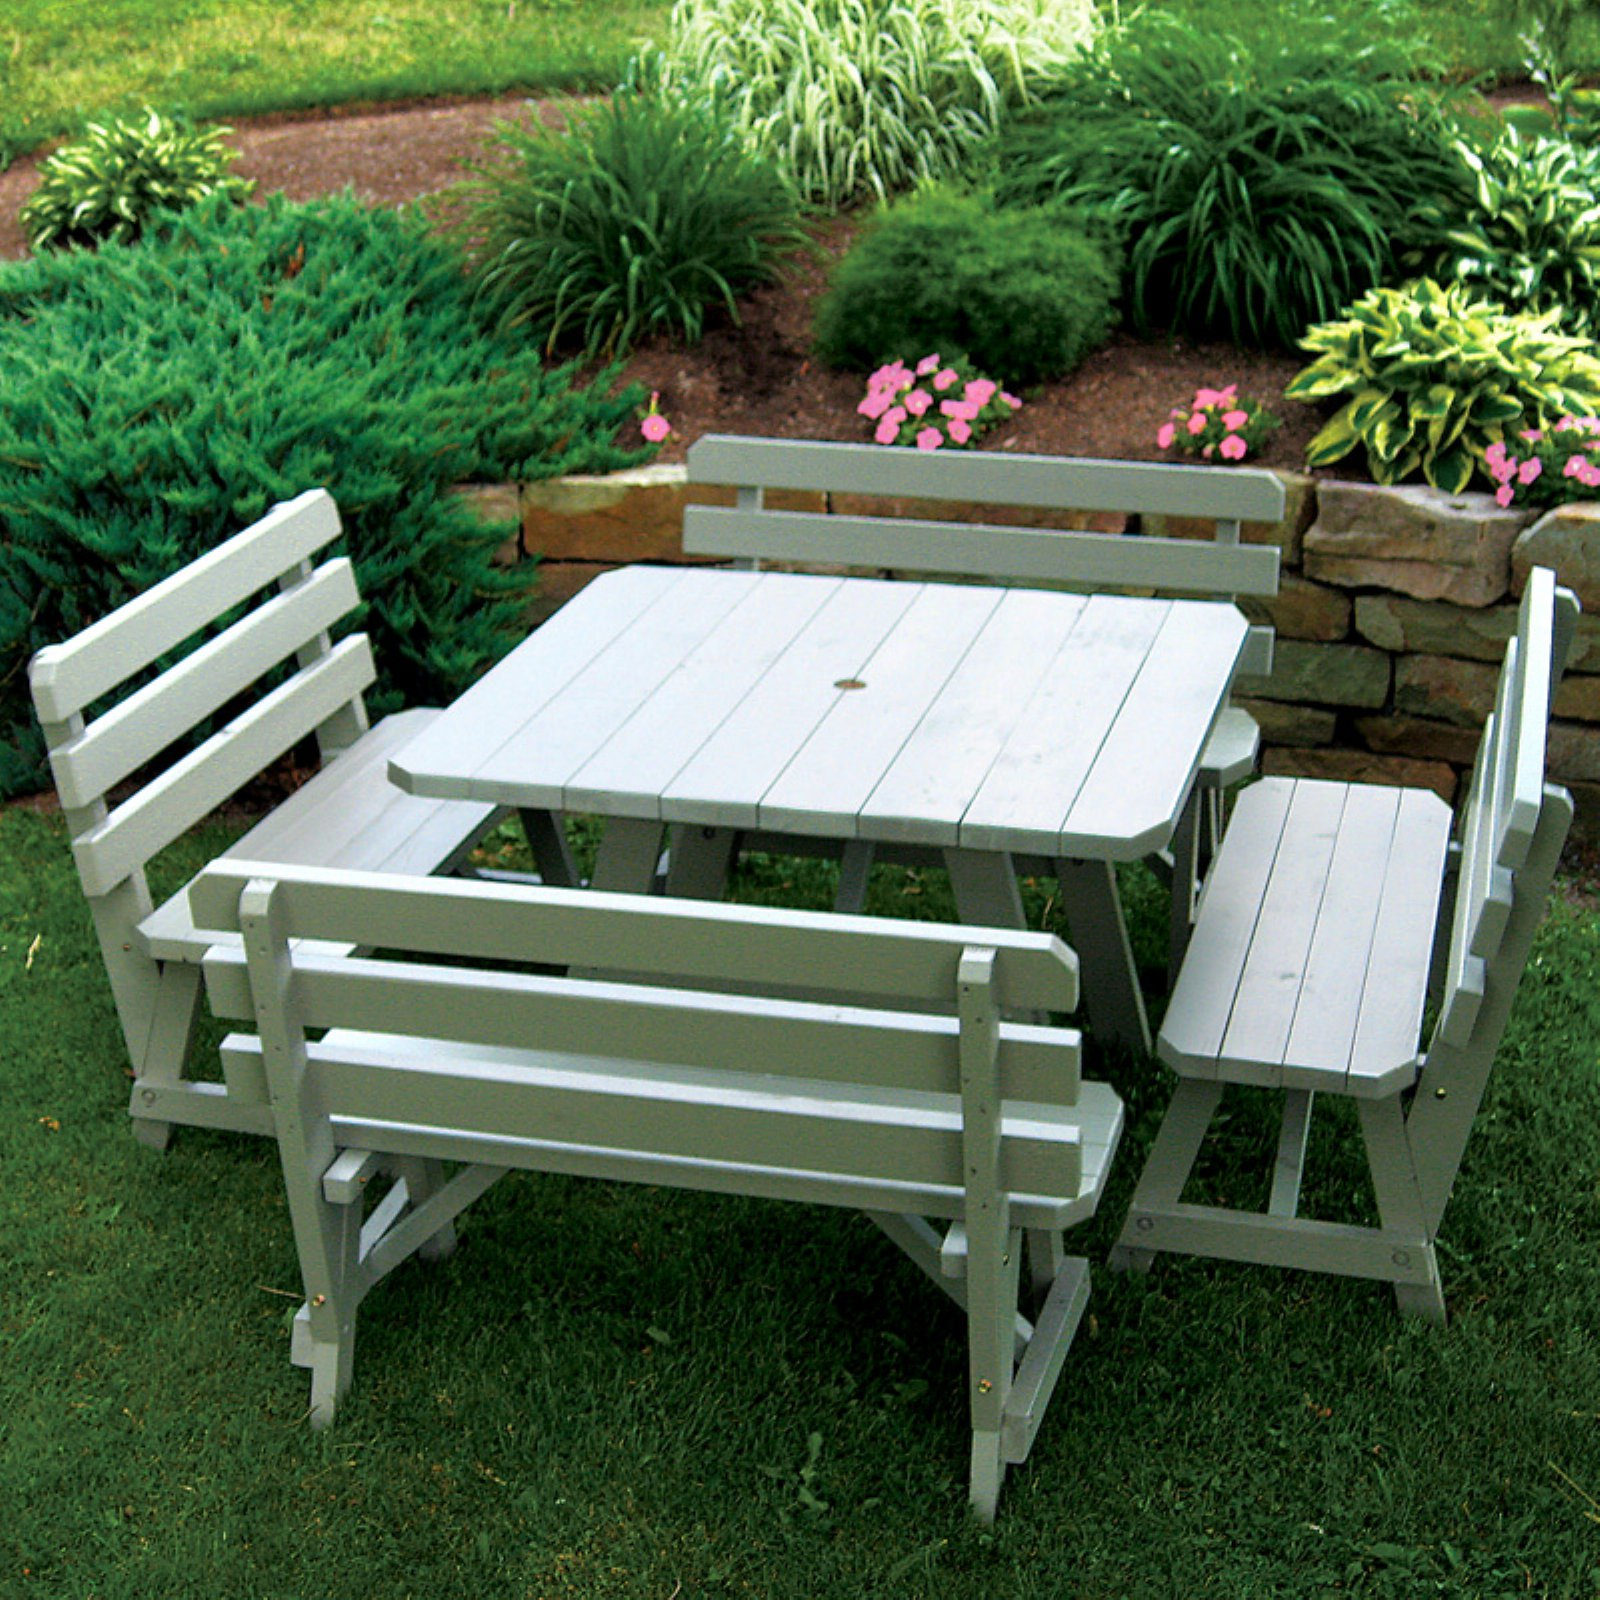 A & L Furniture Yellow Pine Traditional Square Picnic Table with 4 Backed Benches